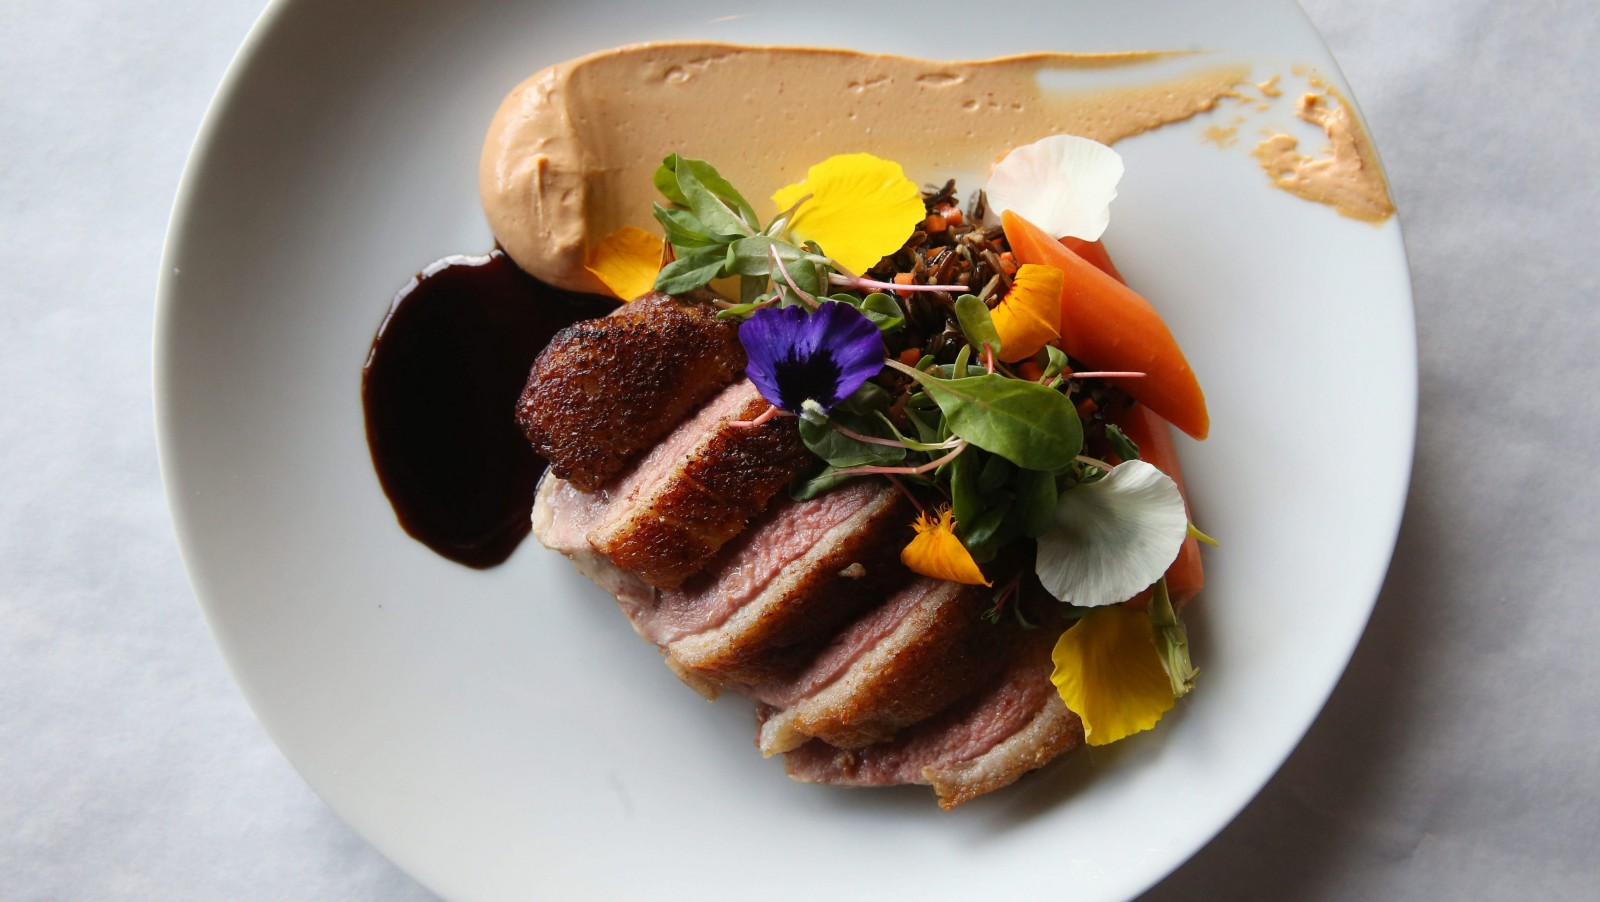 Crispy-skinned duck breast served with wild rice and ponzu. (Sharon Cantillon/Buffalo News)